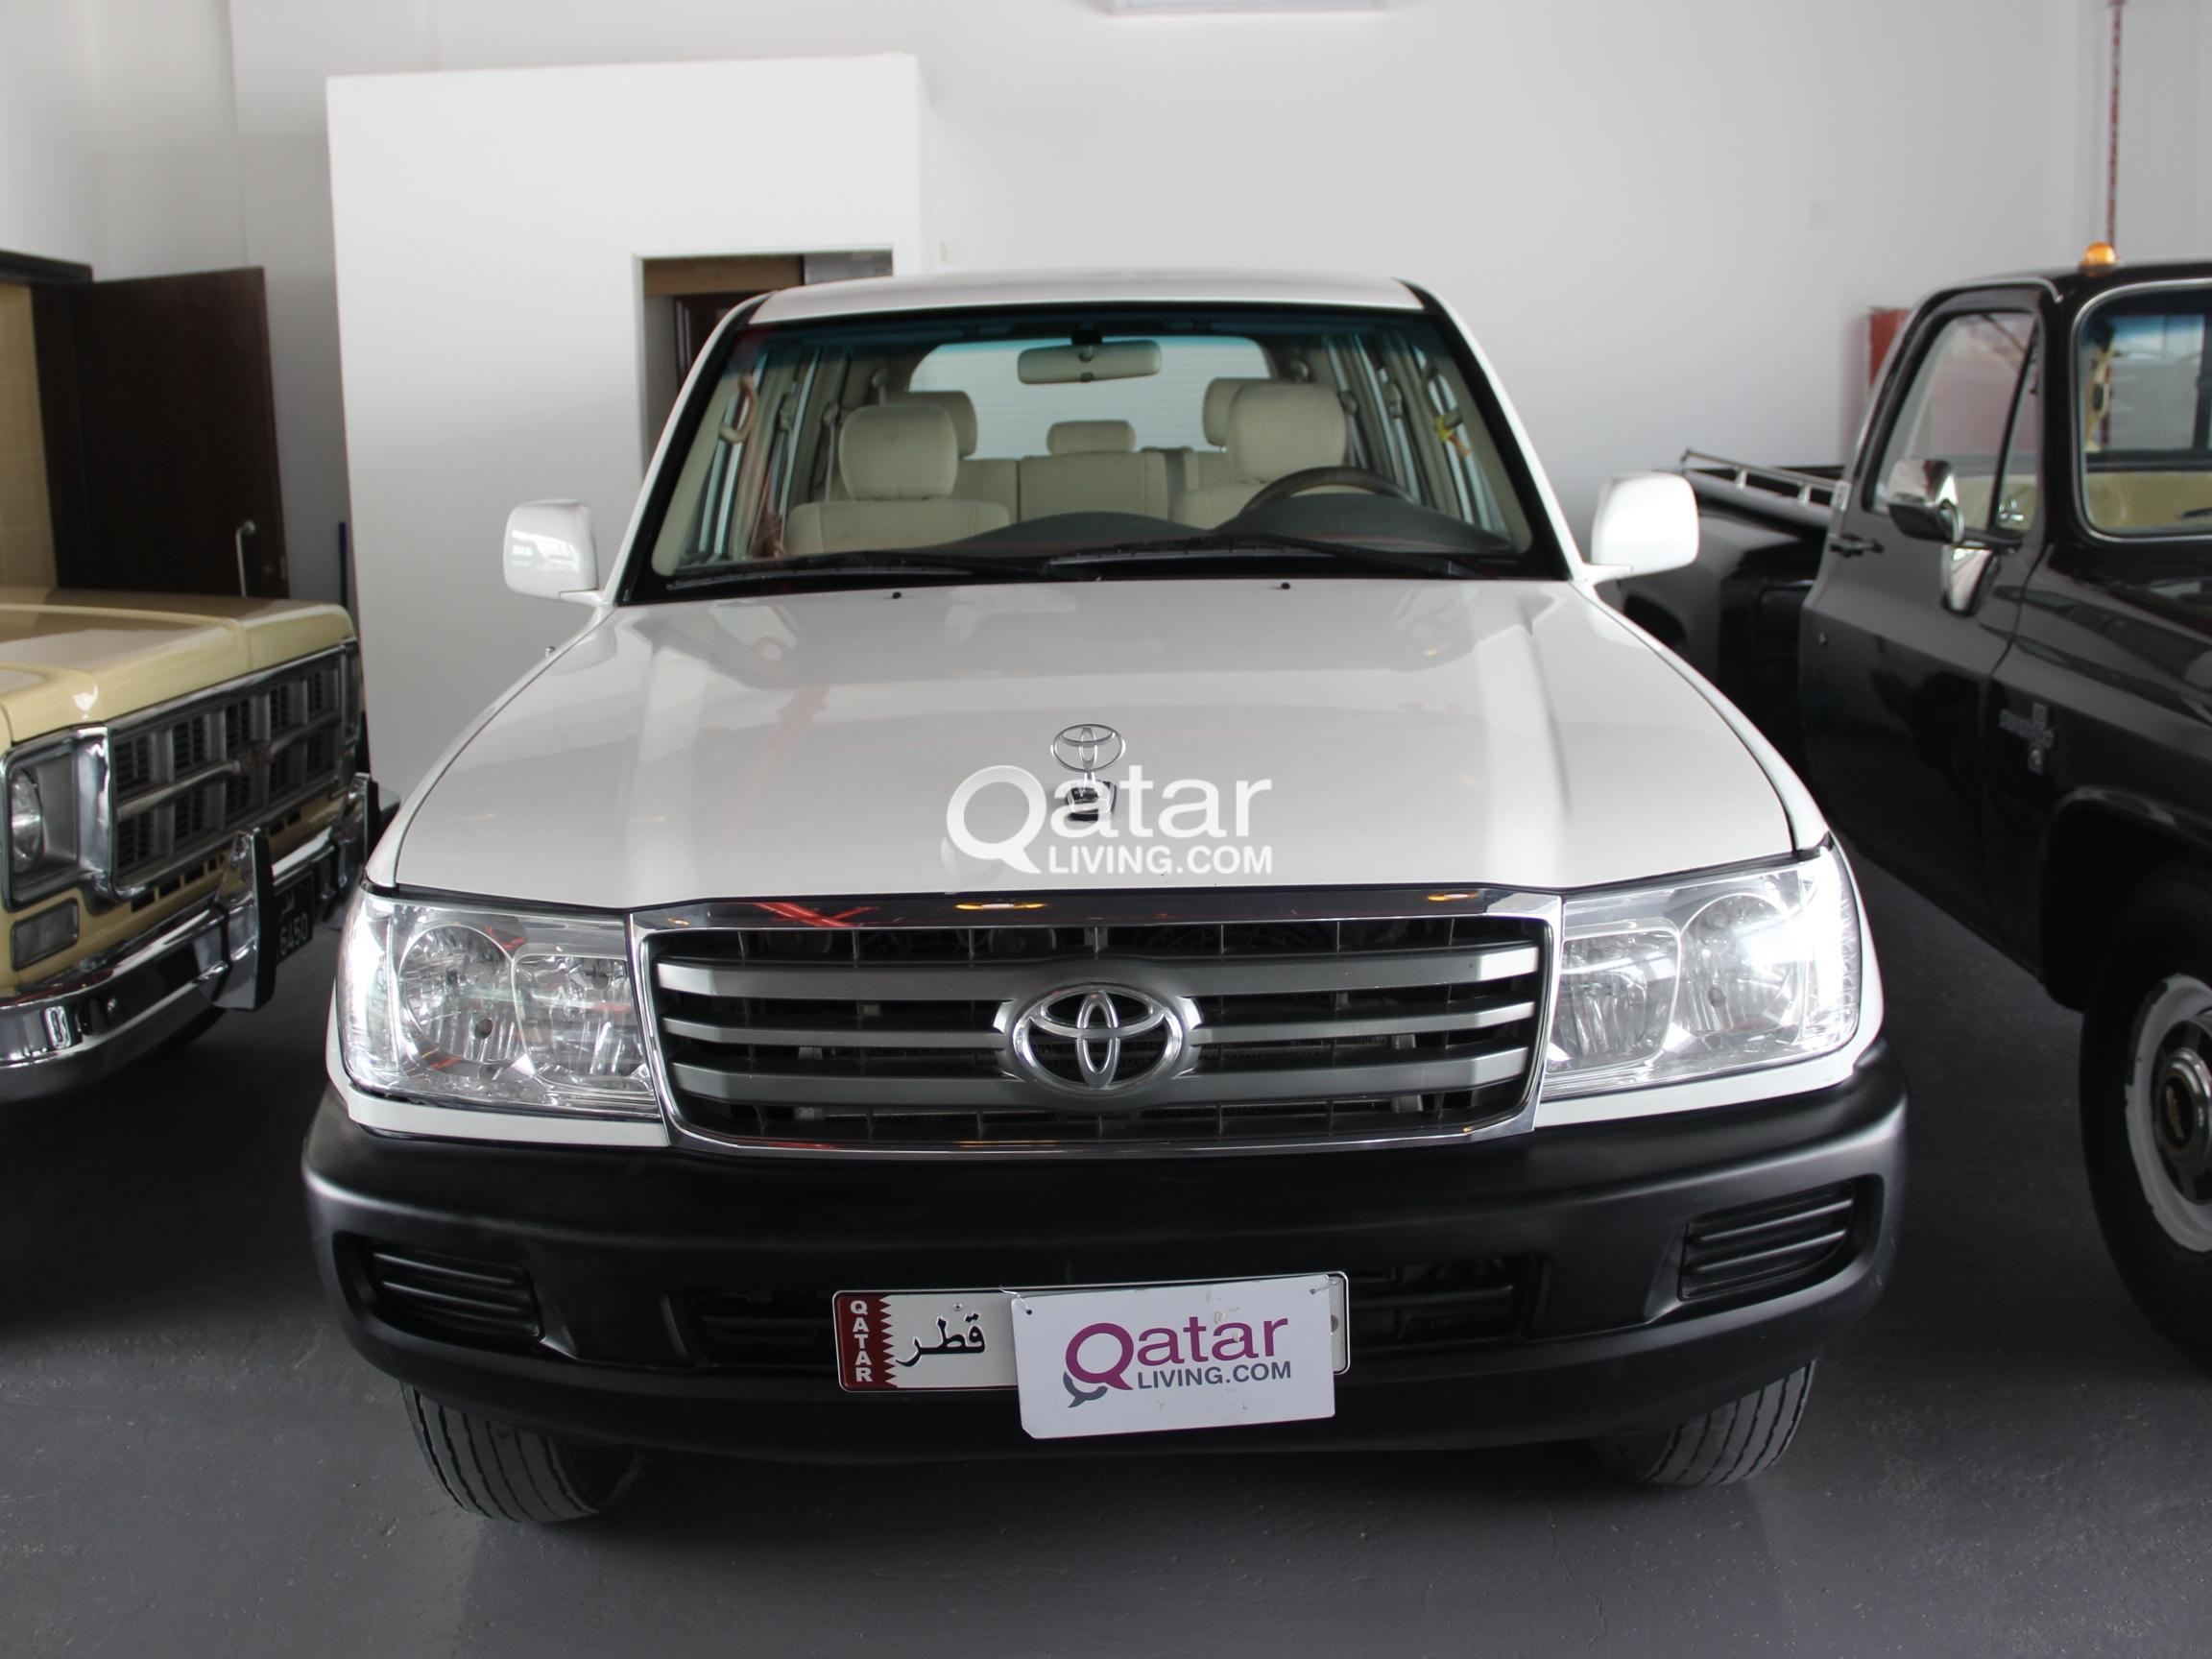 Attractive Title · Title · Title · Title · Title · Title · Title. Information. Vehicle  Make. Toyota. Vehicle Model. Land Cruiser